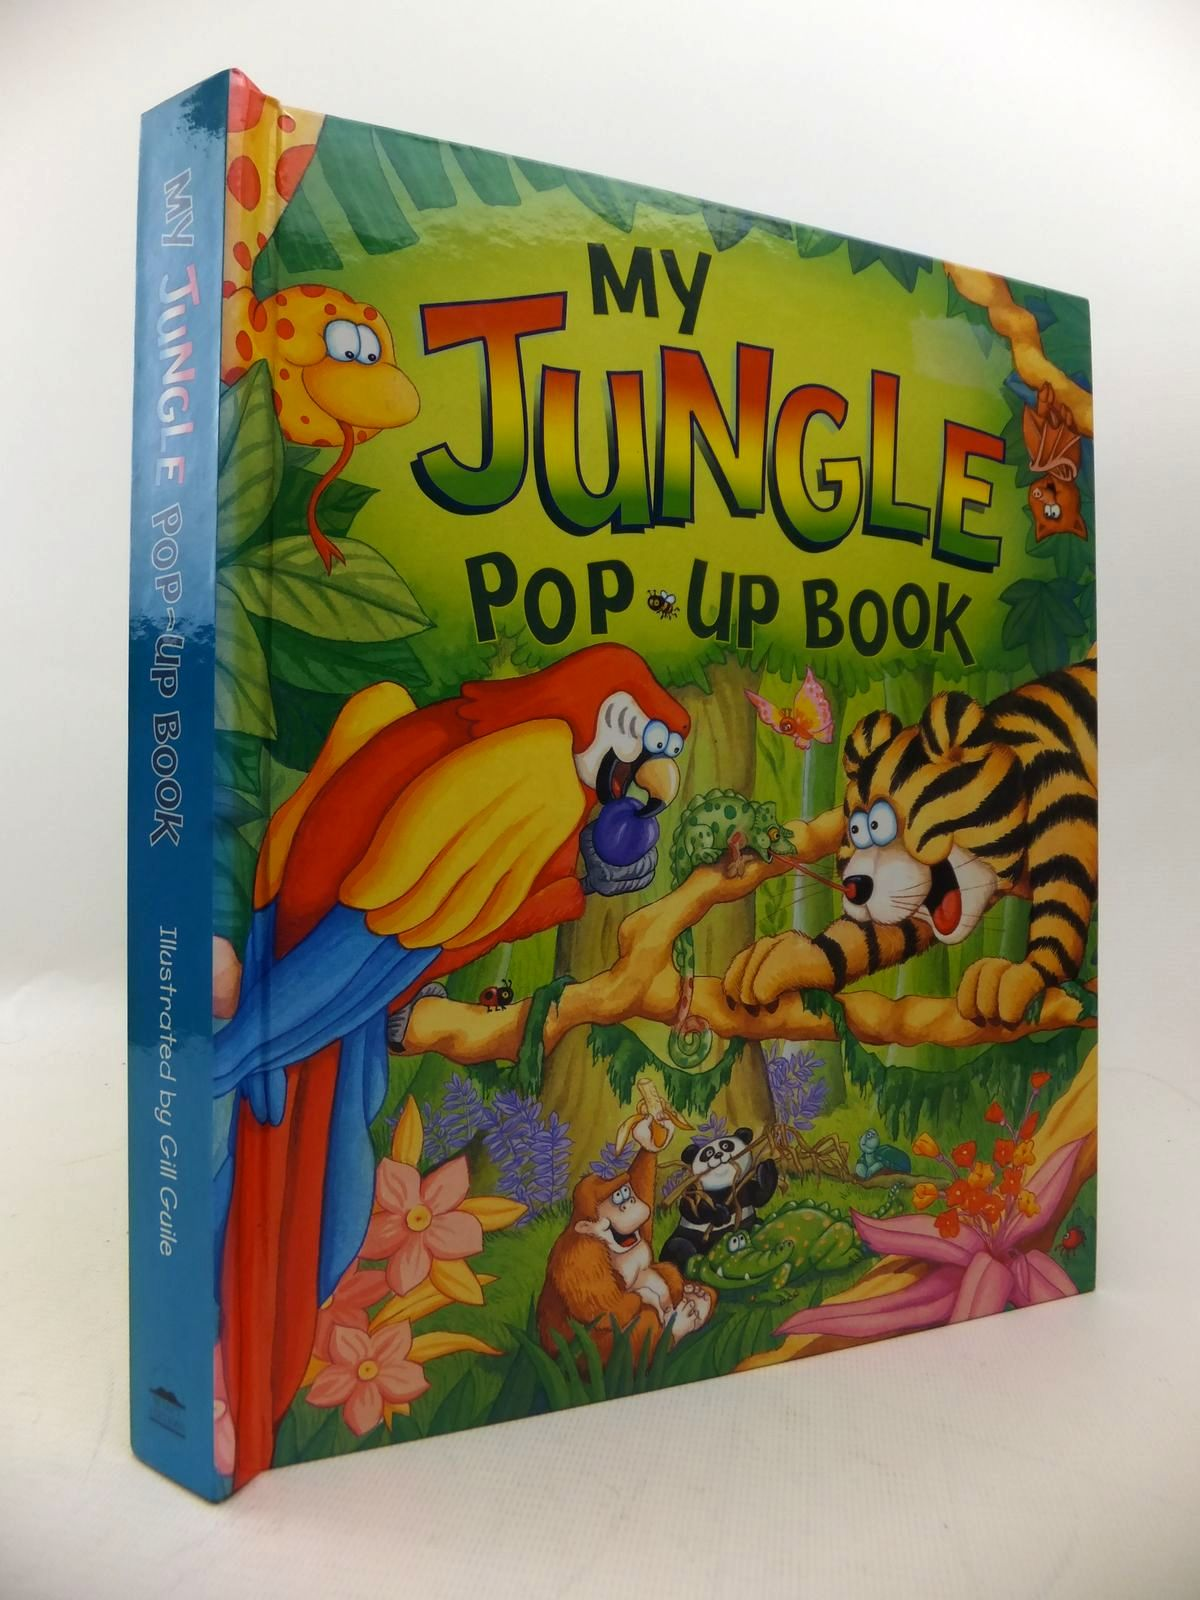 Photo of MY JUNGLE POP-UP BOOK written by Davies, Gill illustrated by Guile, Gill published by Selectabook Ltd. (STOCK CODE: 1813666)  for sale by Stella & Rose's Books